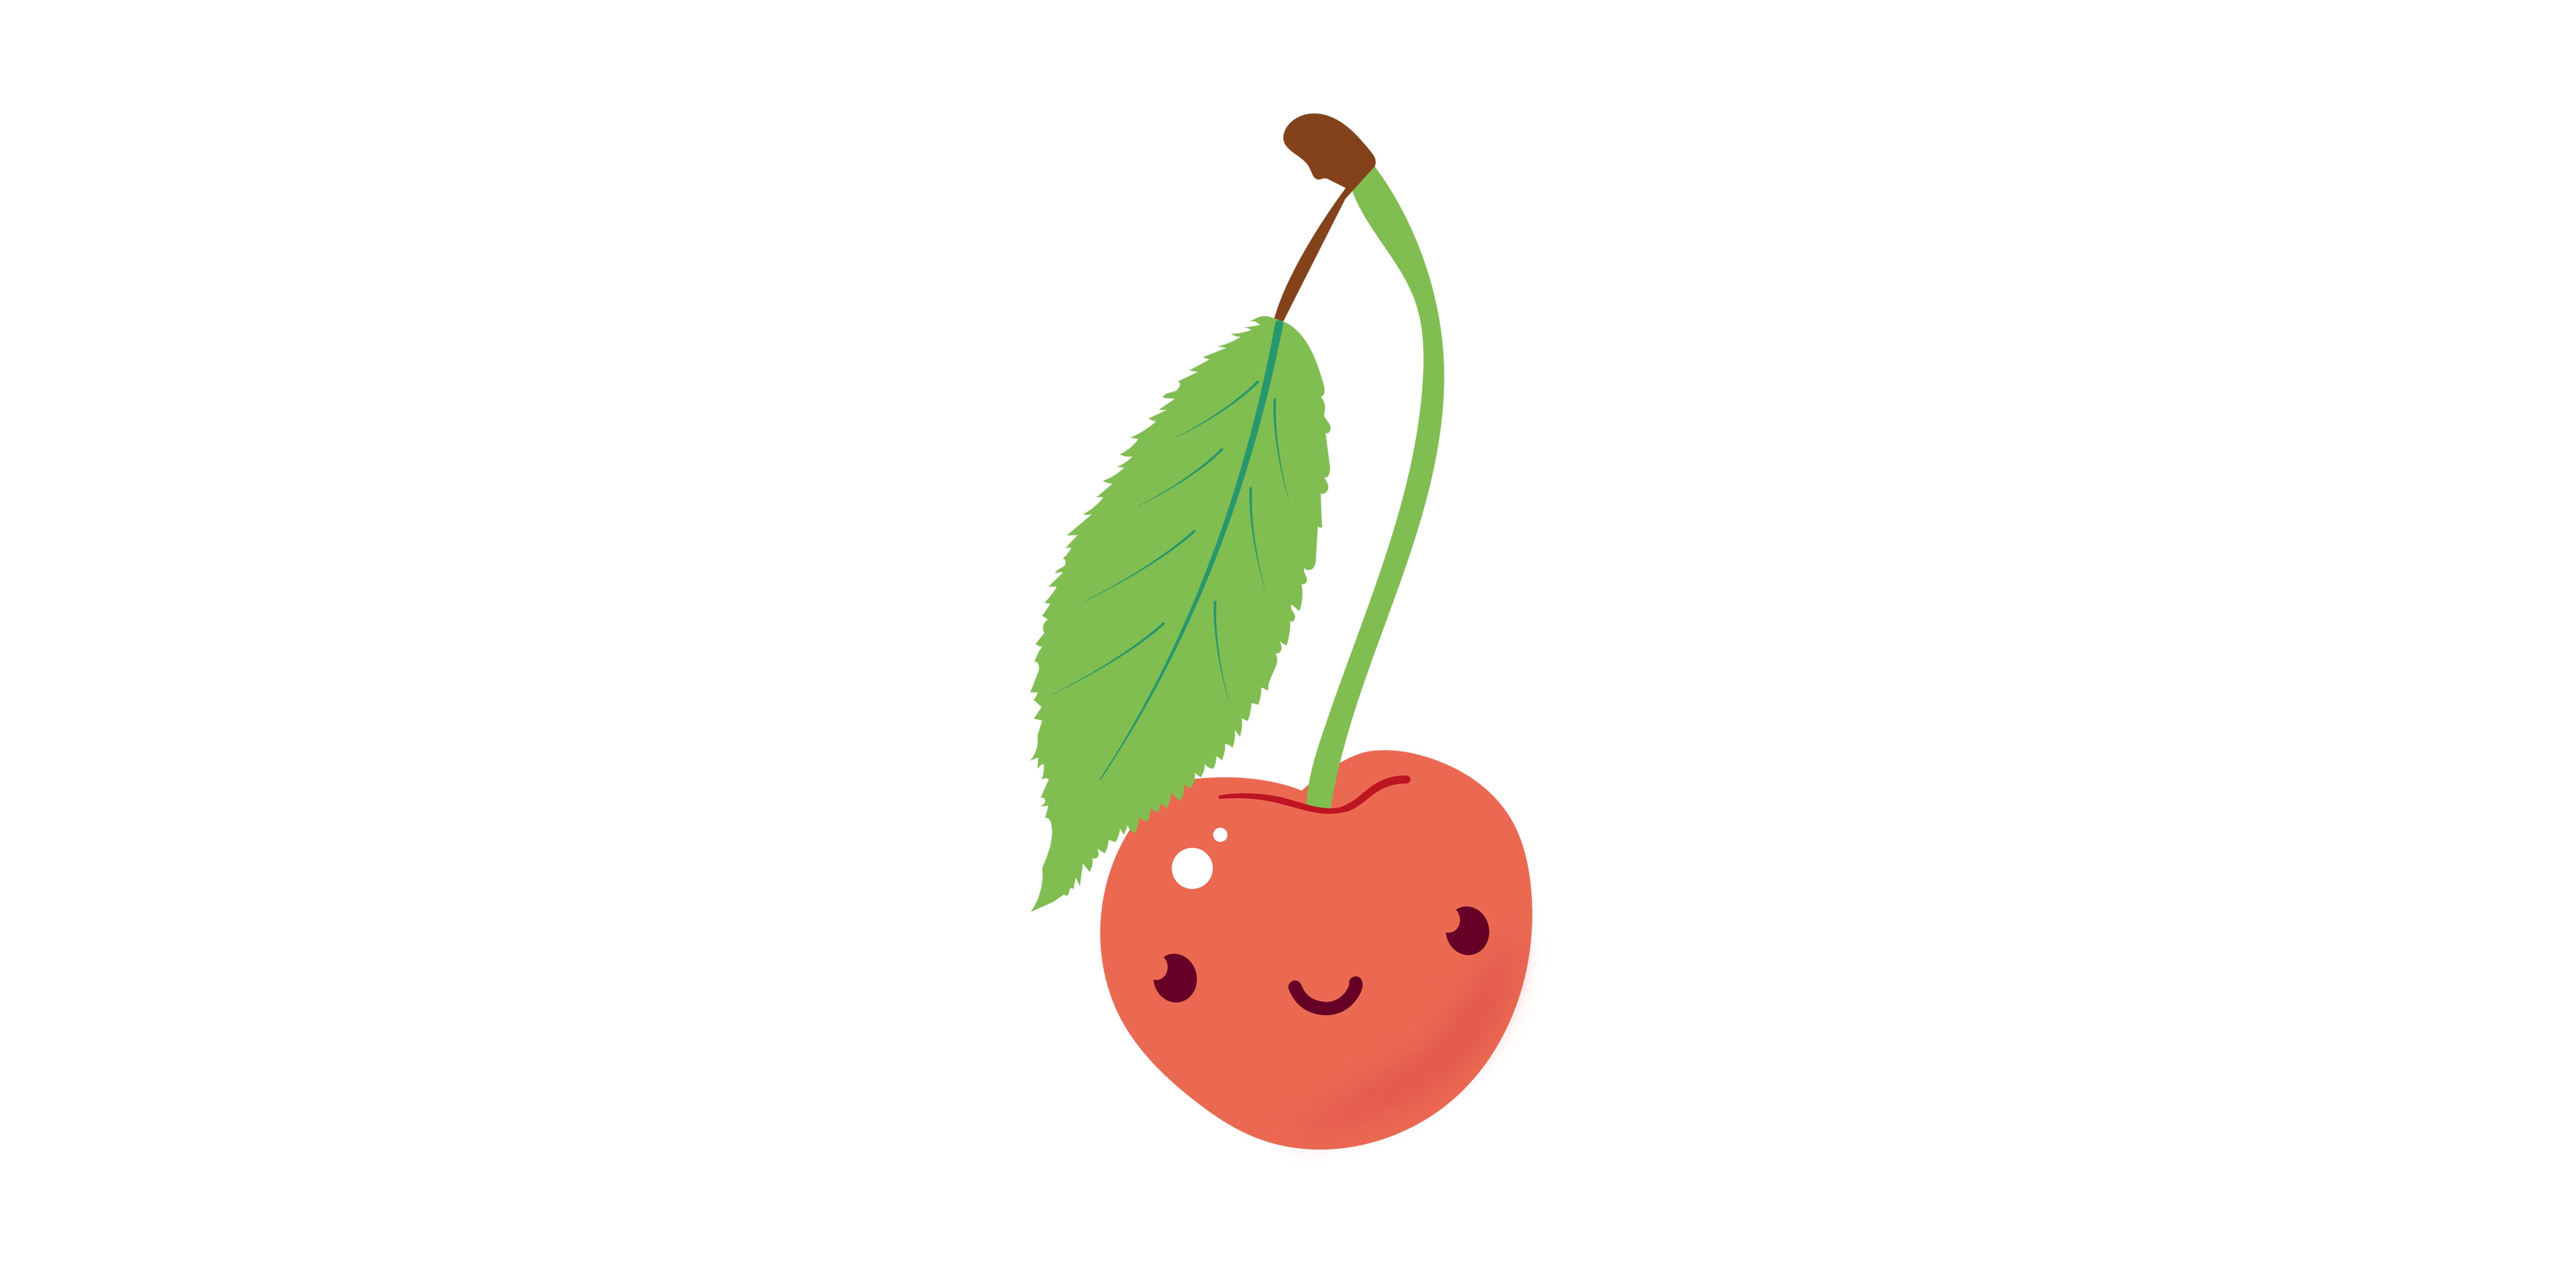 Your baby is now about the size of a cherry.